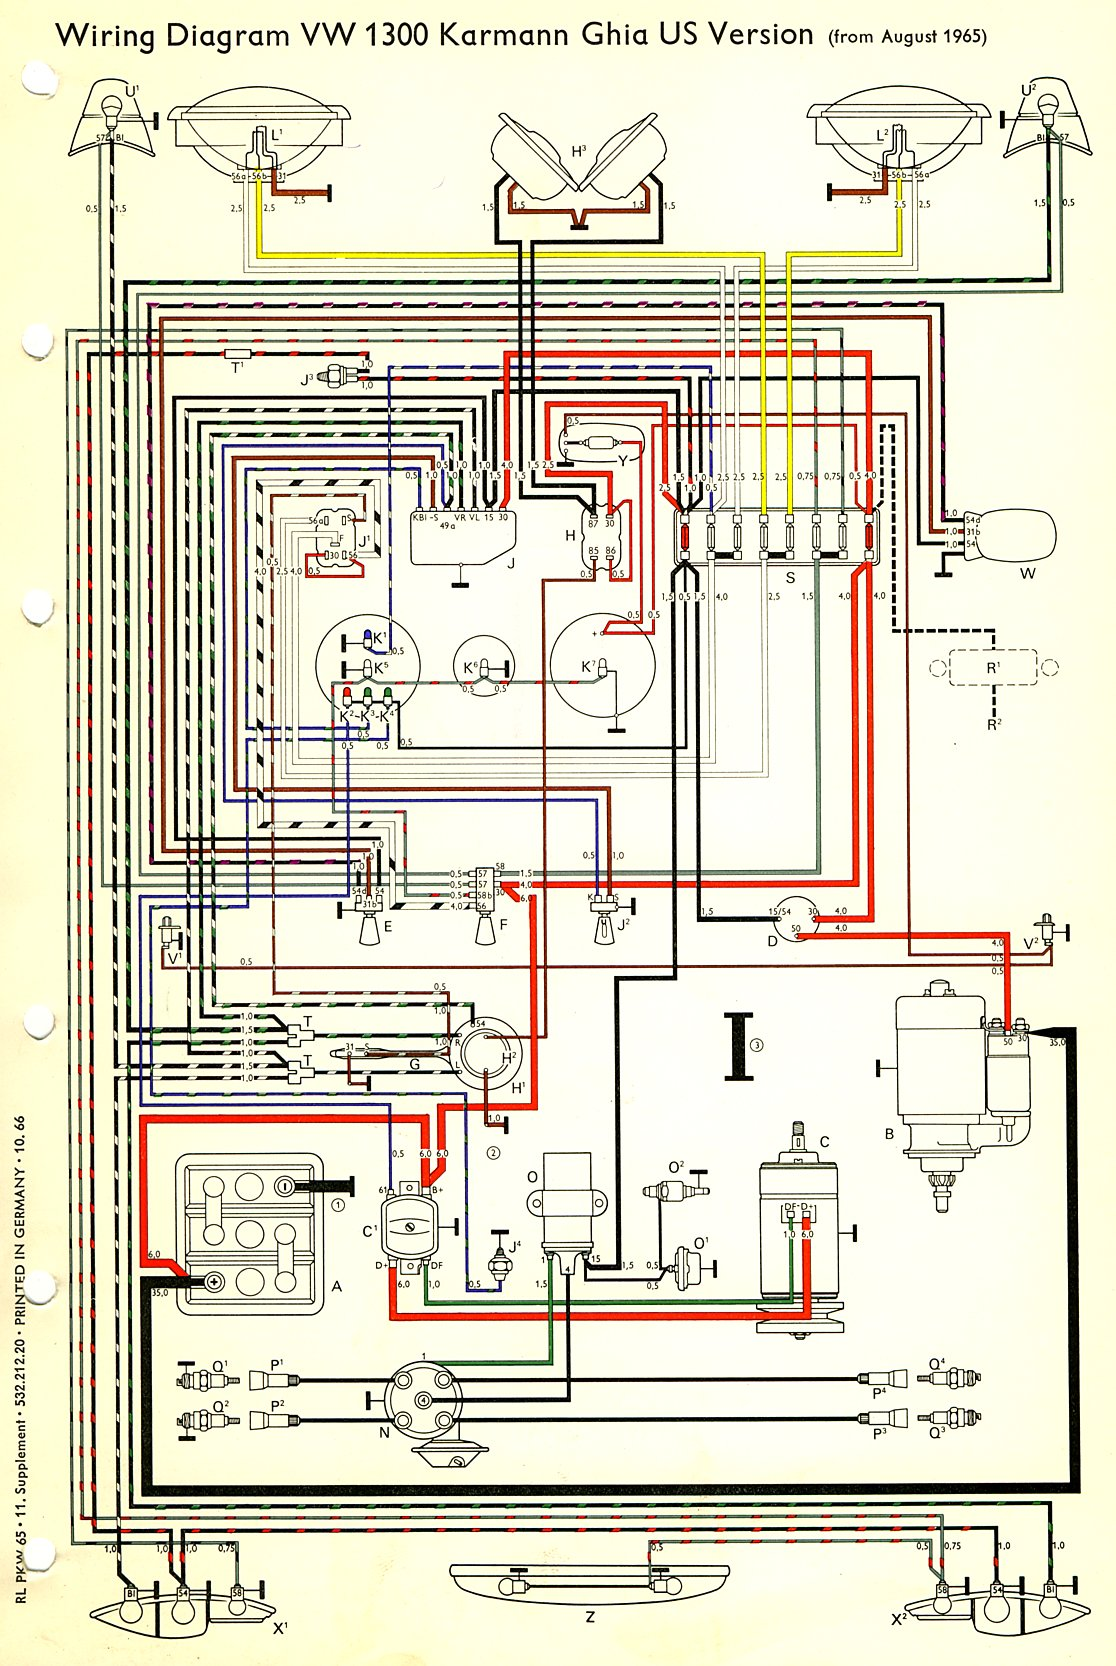 1970 Karmann Ghia Wiring Diagram Free Download Modern Design Of 68 Vw Beetle Flasher Thesamba Com Diagrams Rh Volkswagen